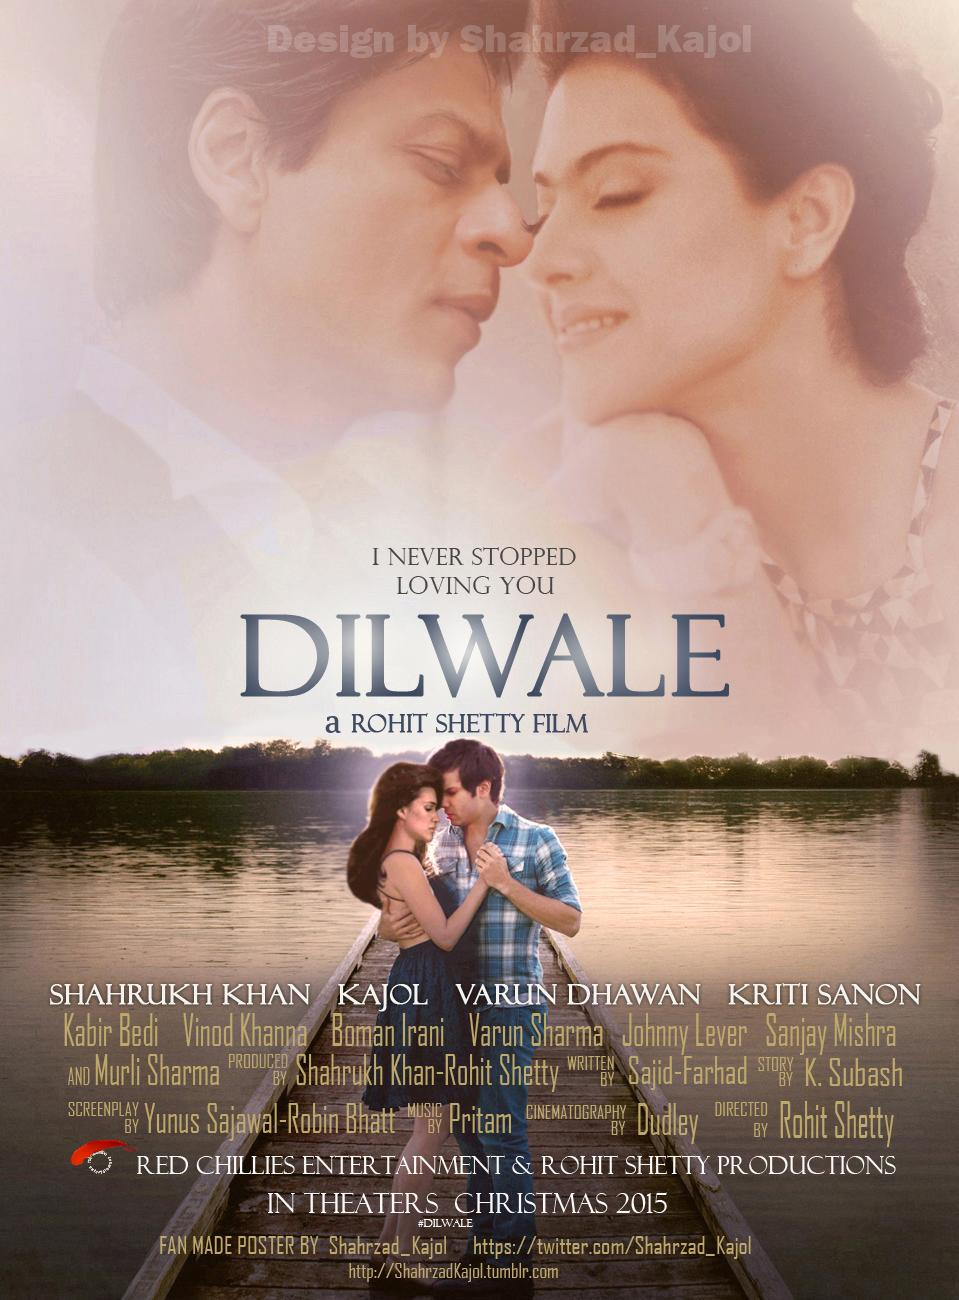 Dilwale poster is copied from The Best of me